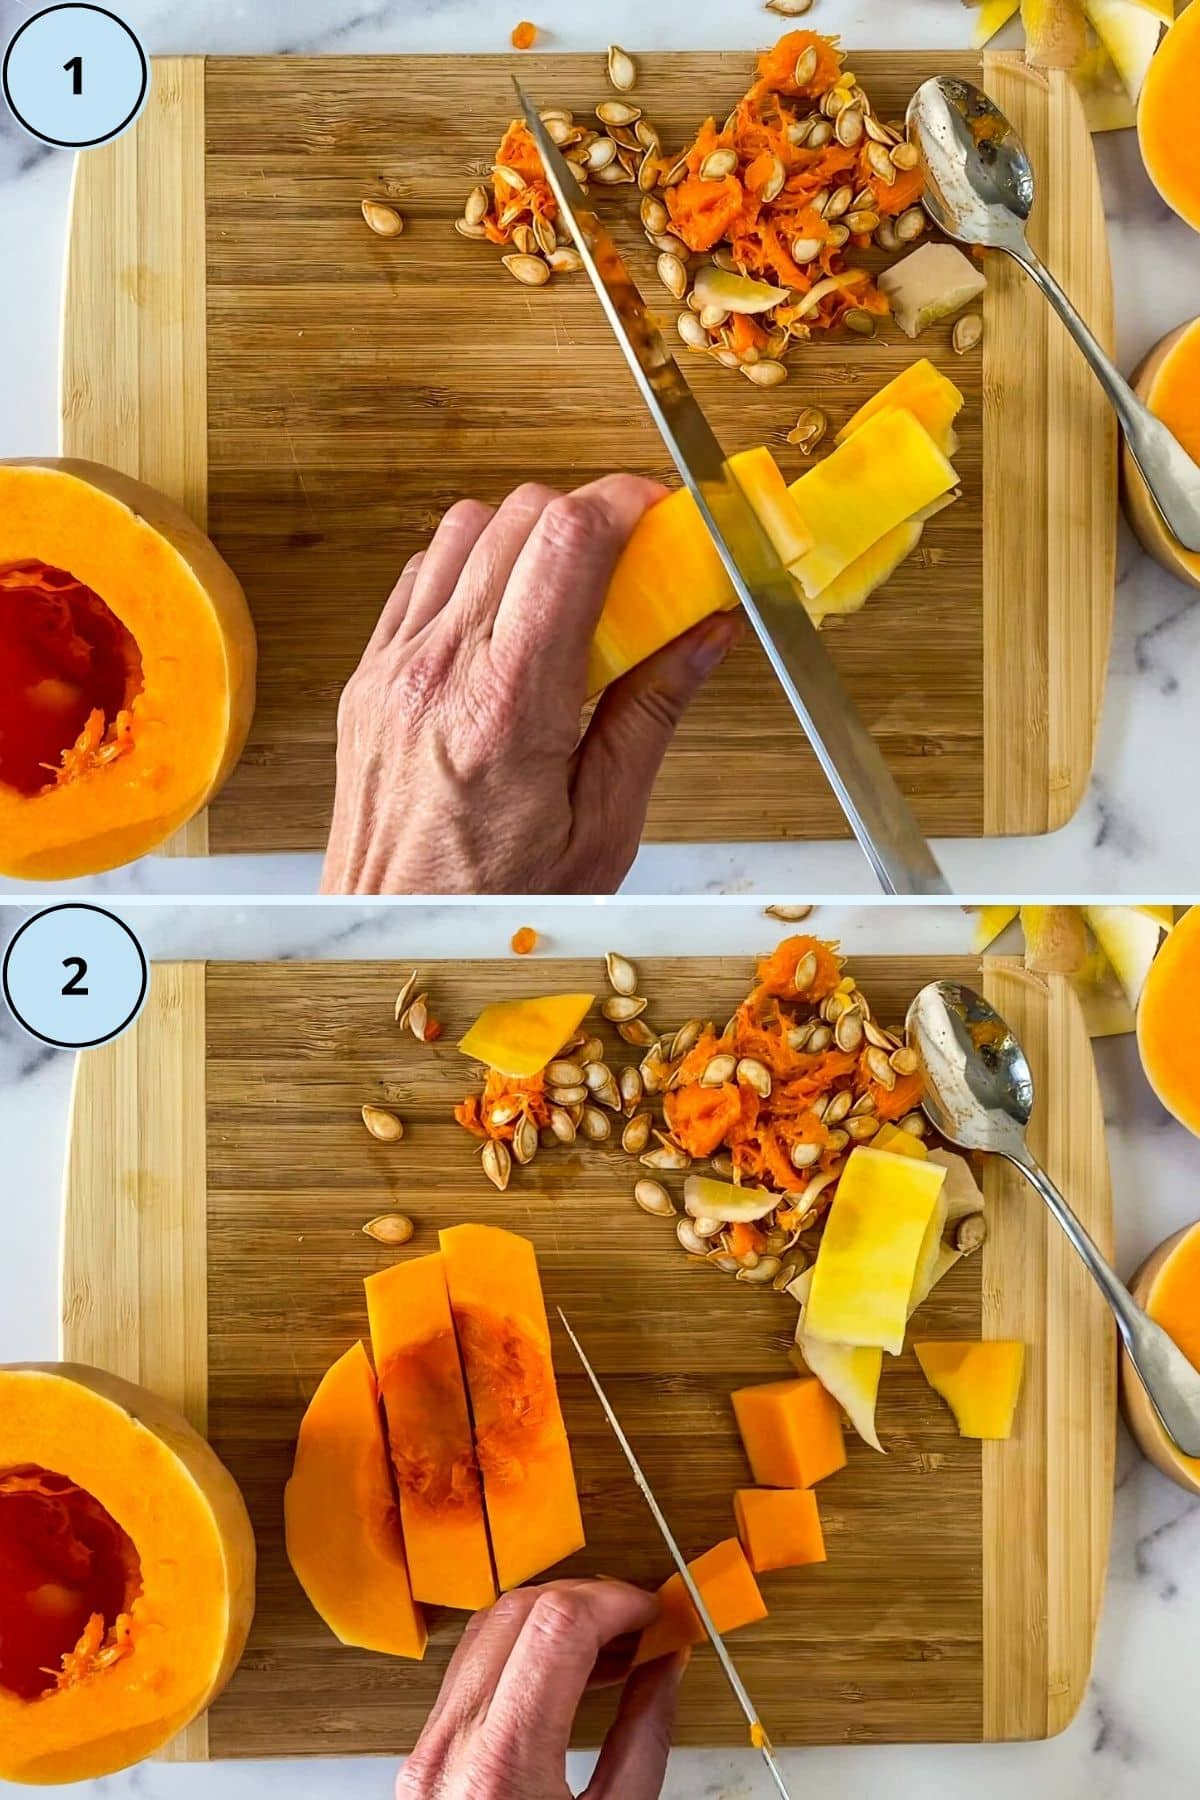 Collage of 2 images demonstrating how to peel and dice the squash.